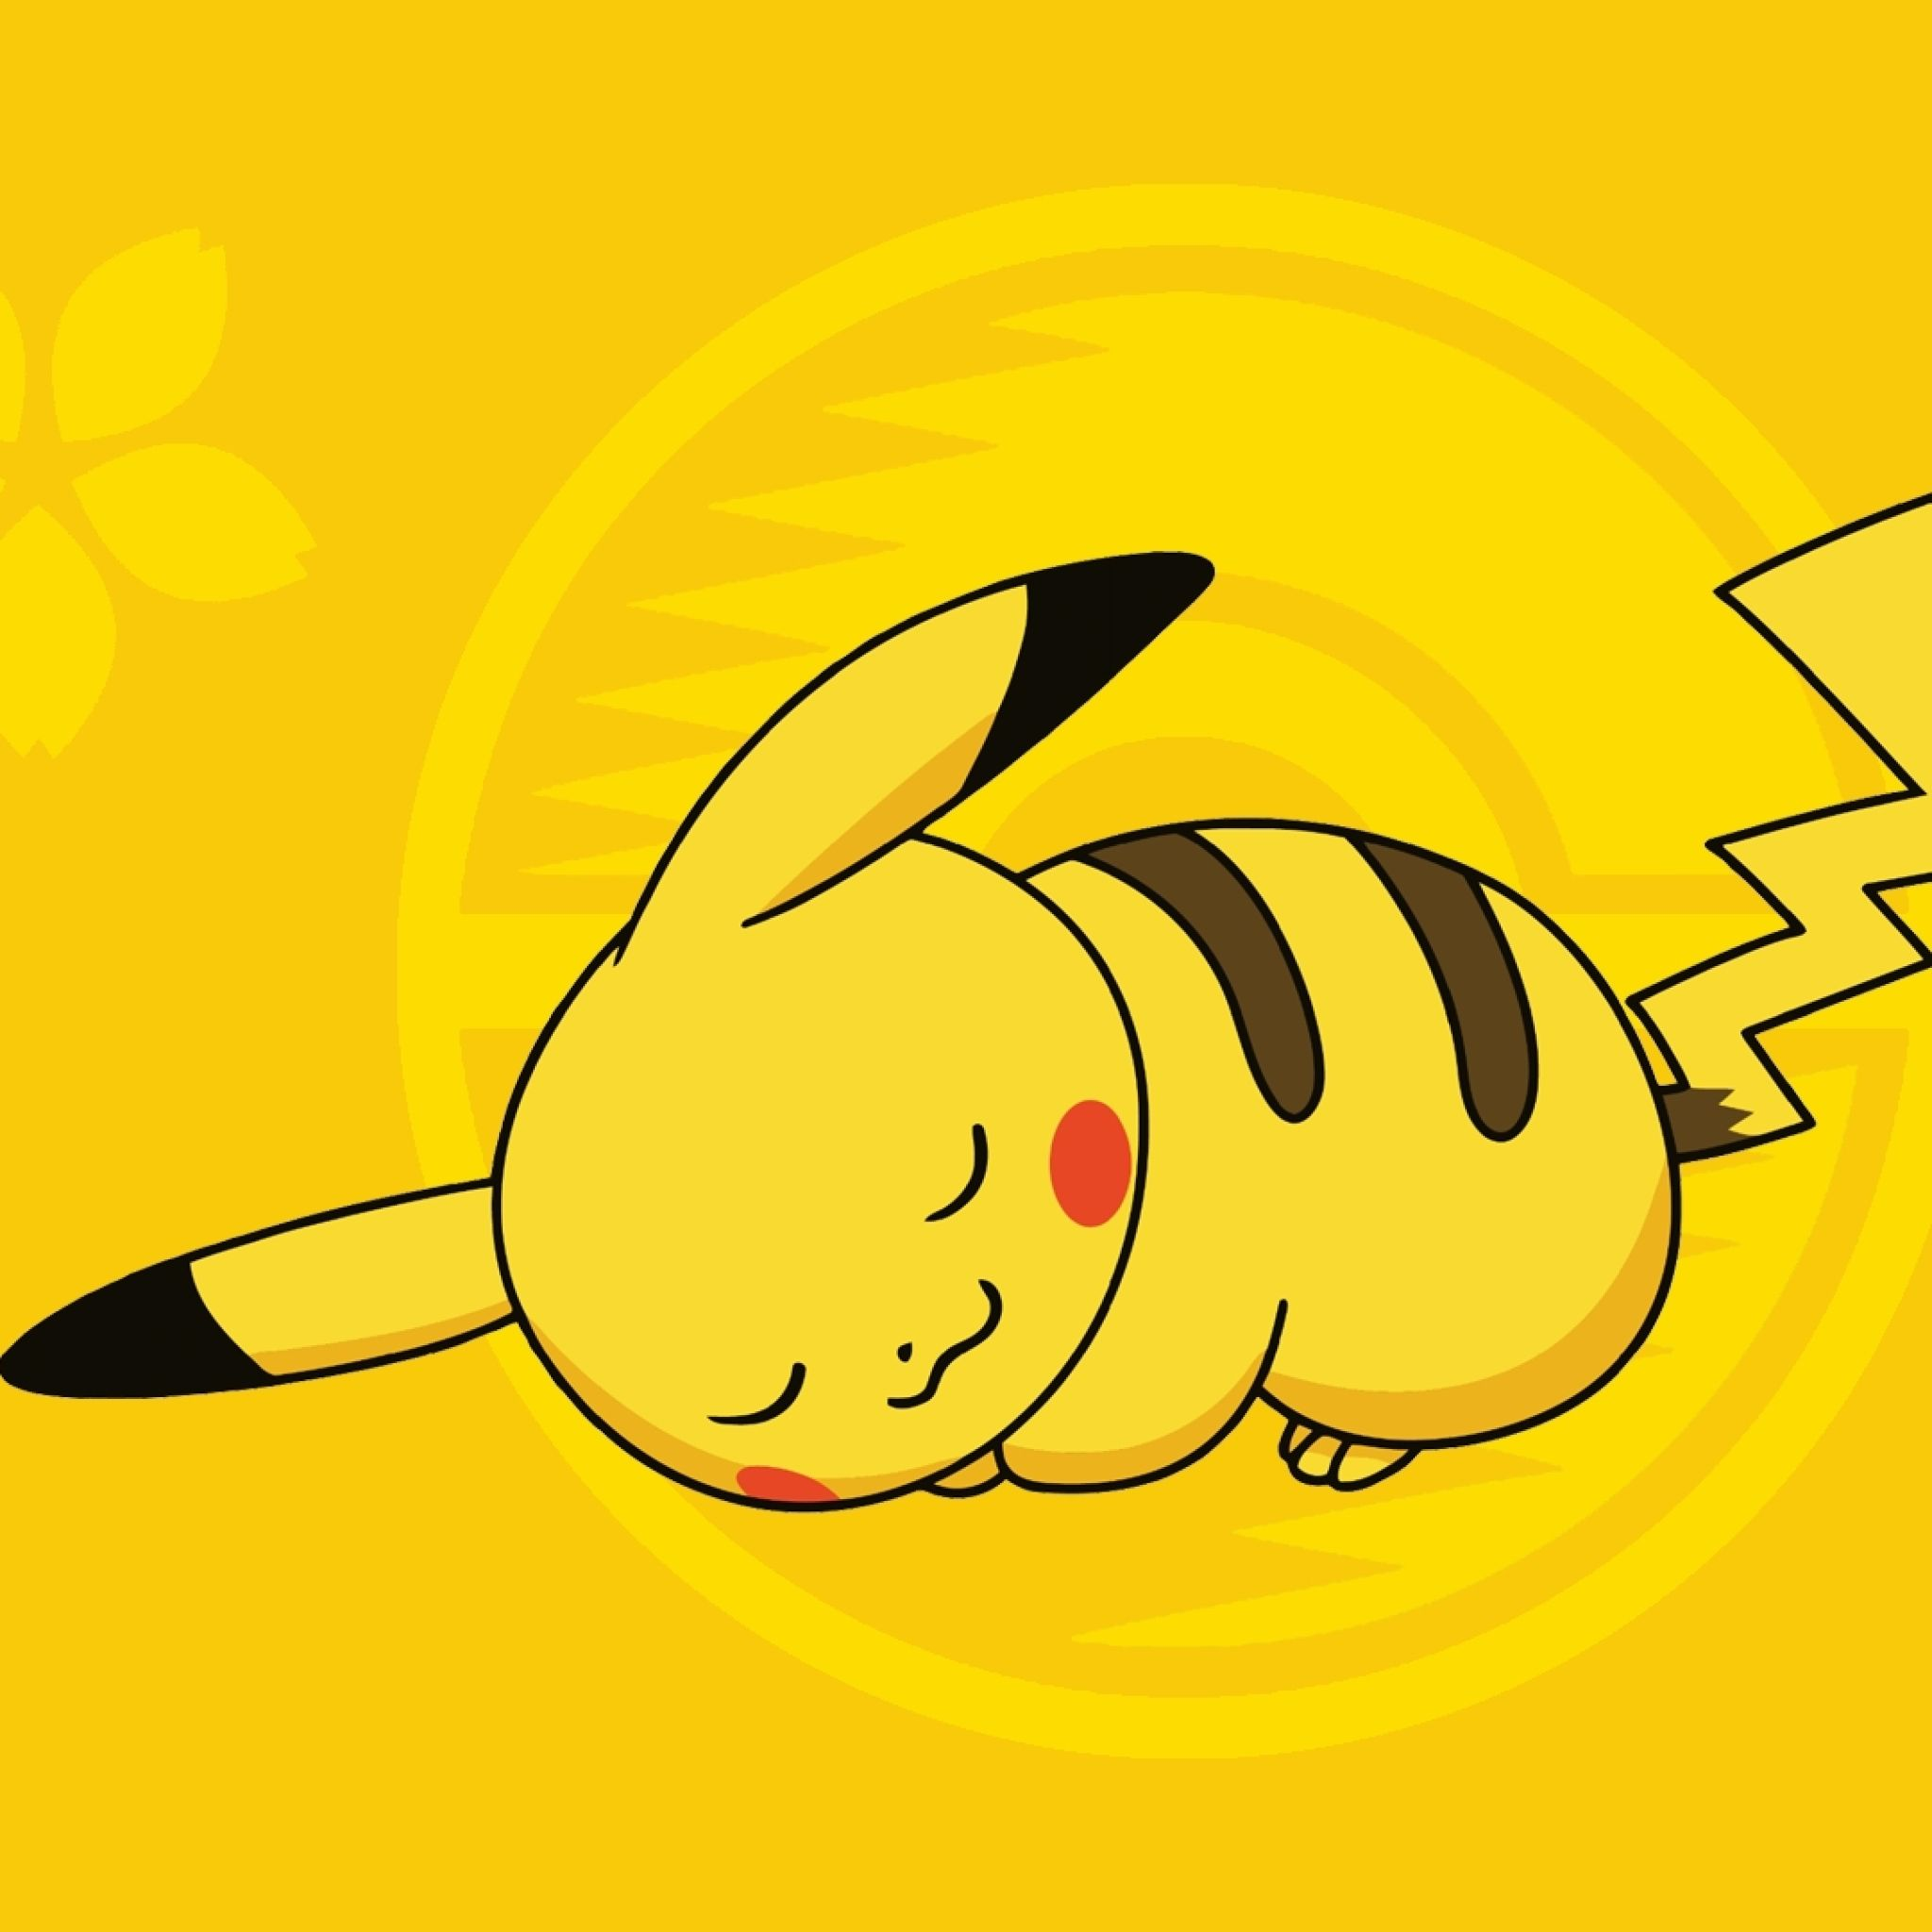 Wallpaper download mobile9 - Sleepy Pikachu Tap To See More Cool Pokemon Wallpaper Mobile9